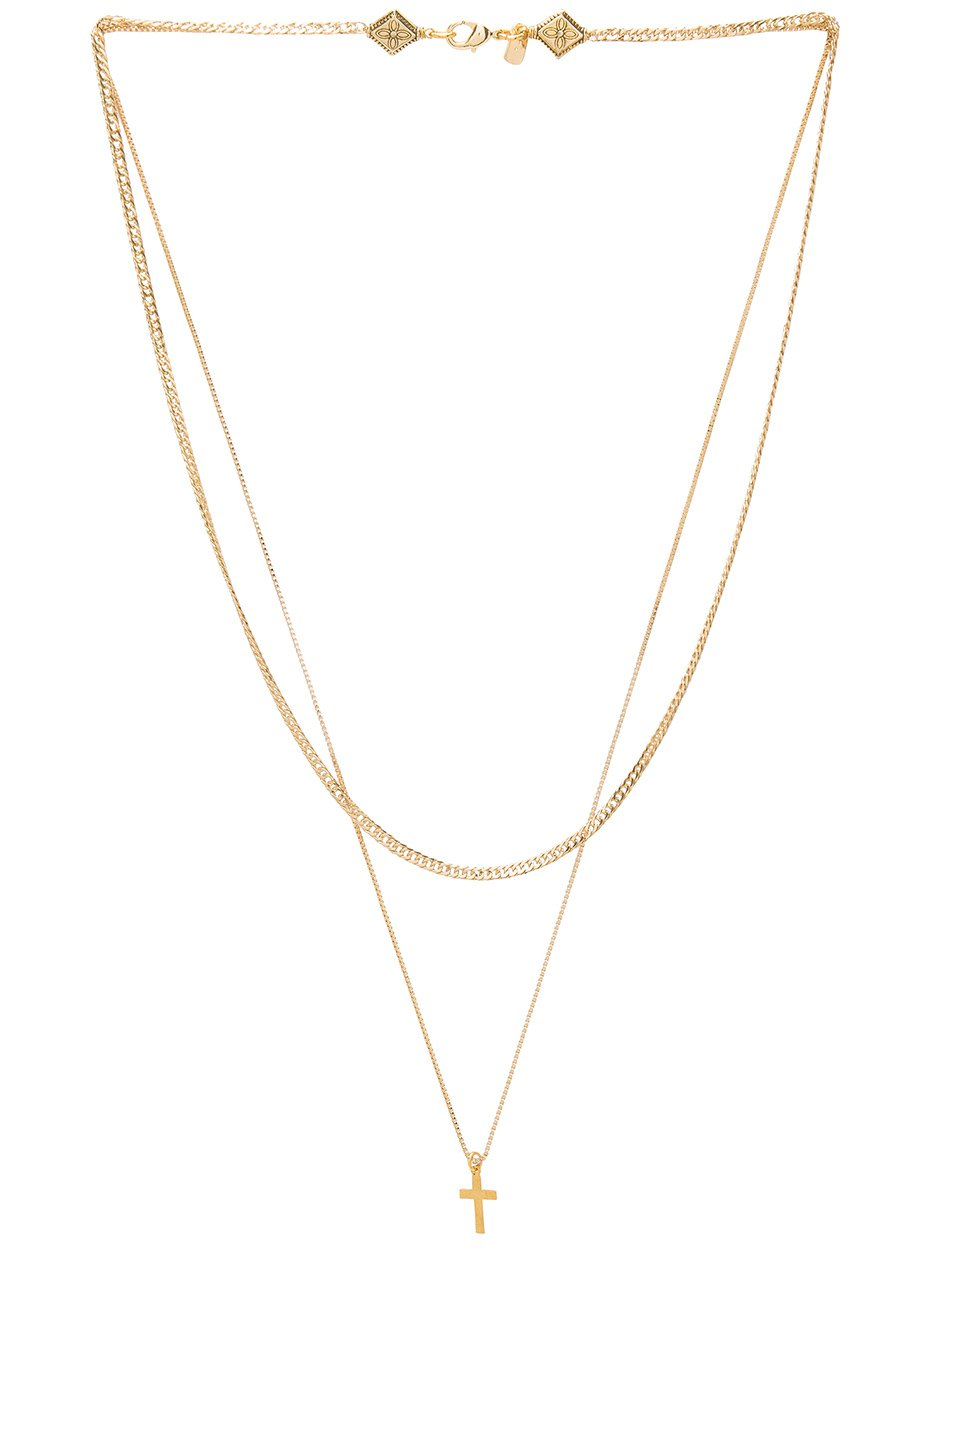 Simple Layered Chain Cross Necklace